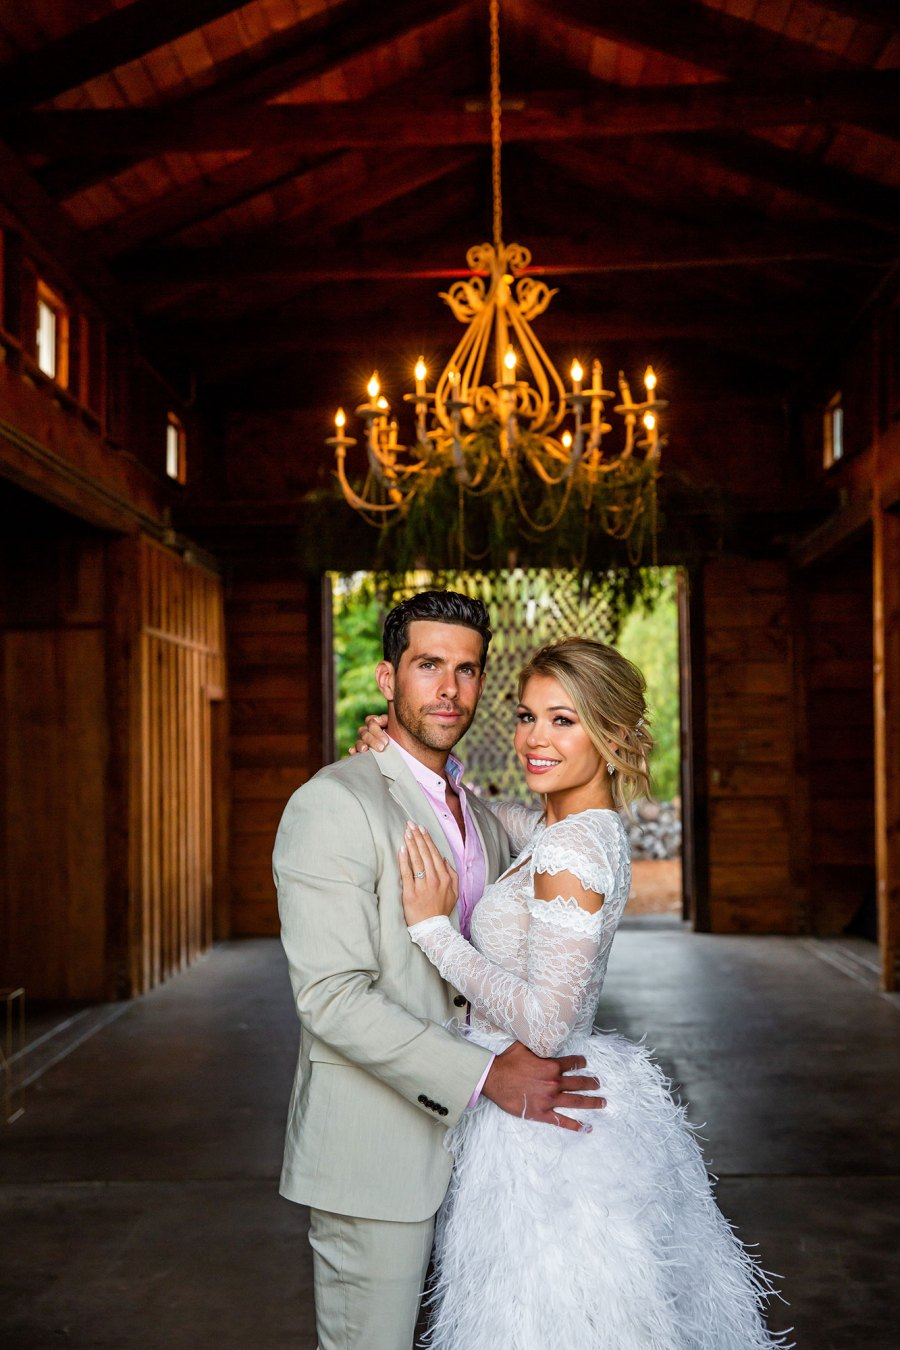 'Bachelor in Paradise' Alums Krystal Nielson and Chris Randone Look More in Love Than Ever at Lavish Engagement Party